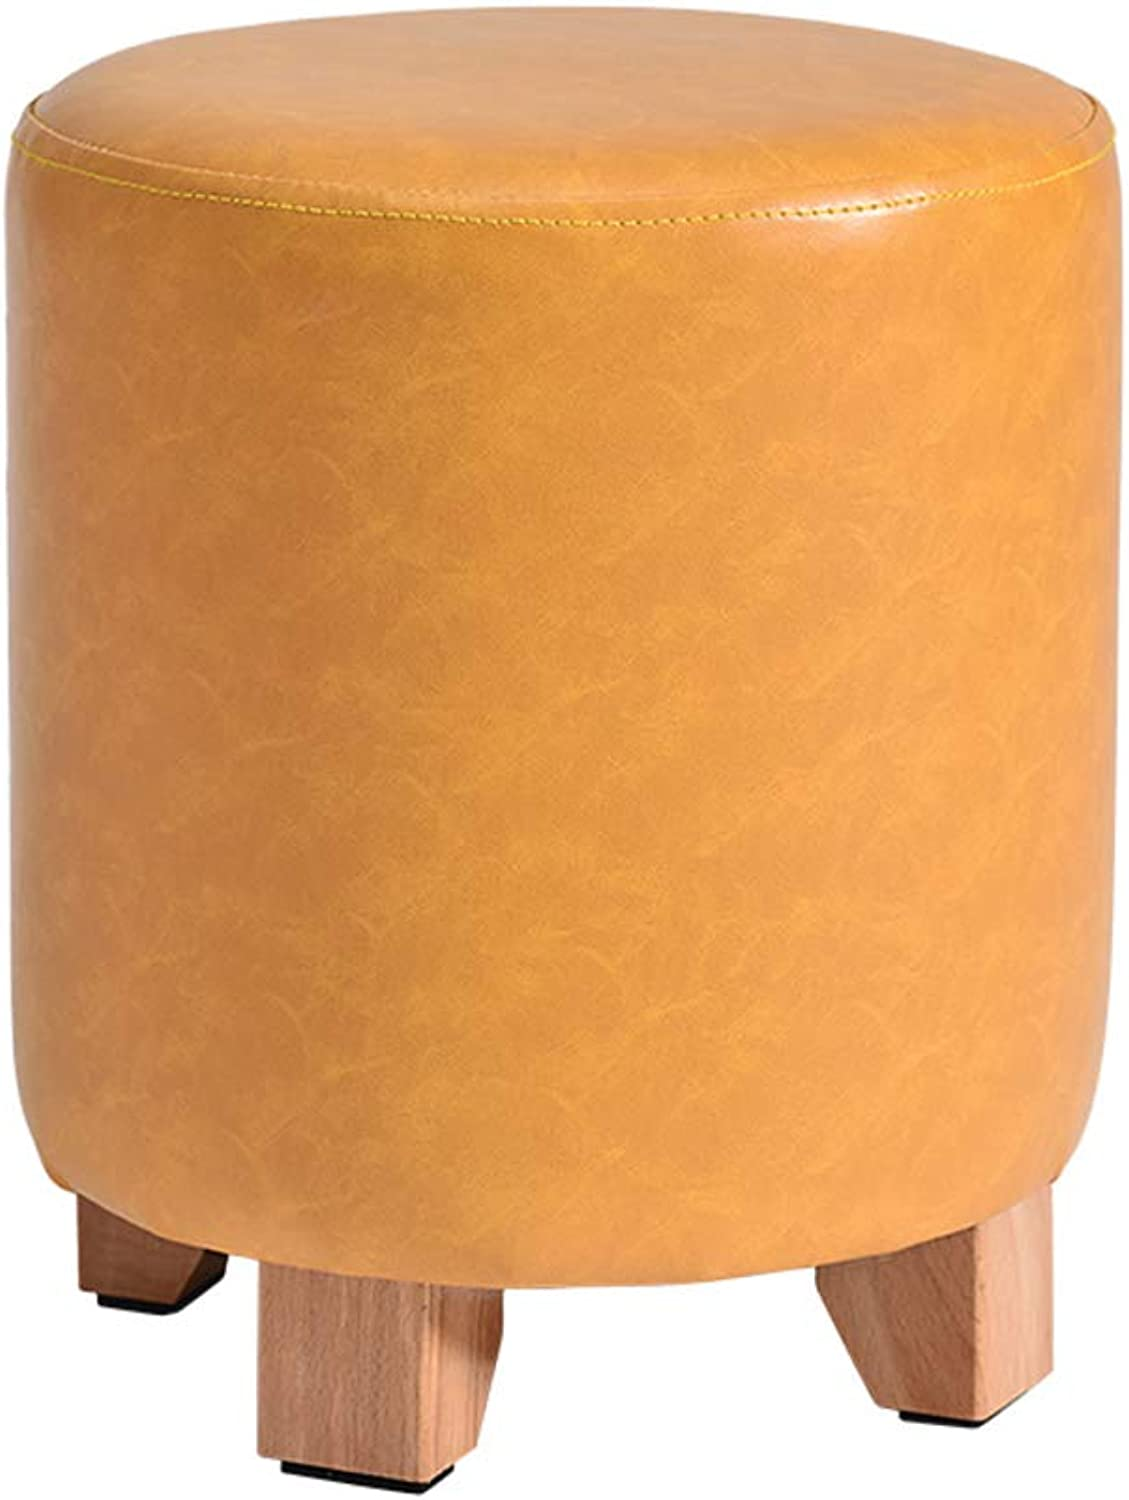 Upholstered, Round Wood European Leather Pu Leather -A 29x30cm(11x12inch)